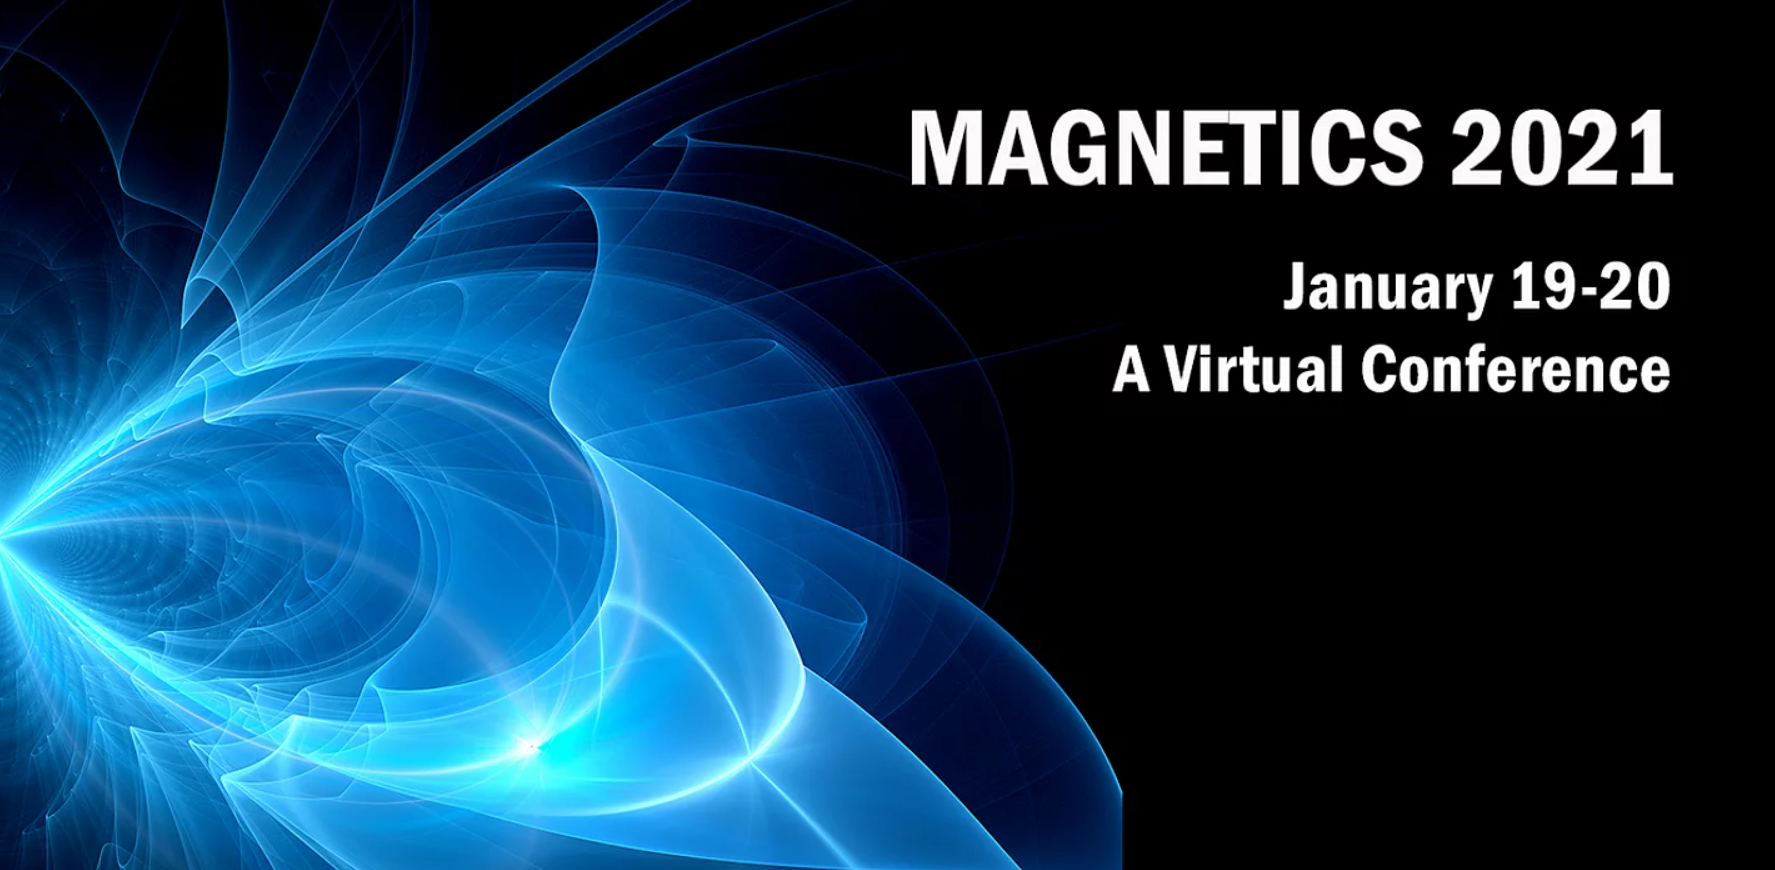 Magnetics 2021 Virtual Conference